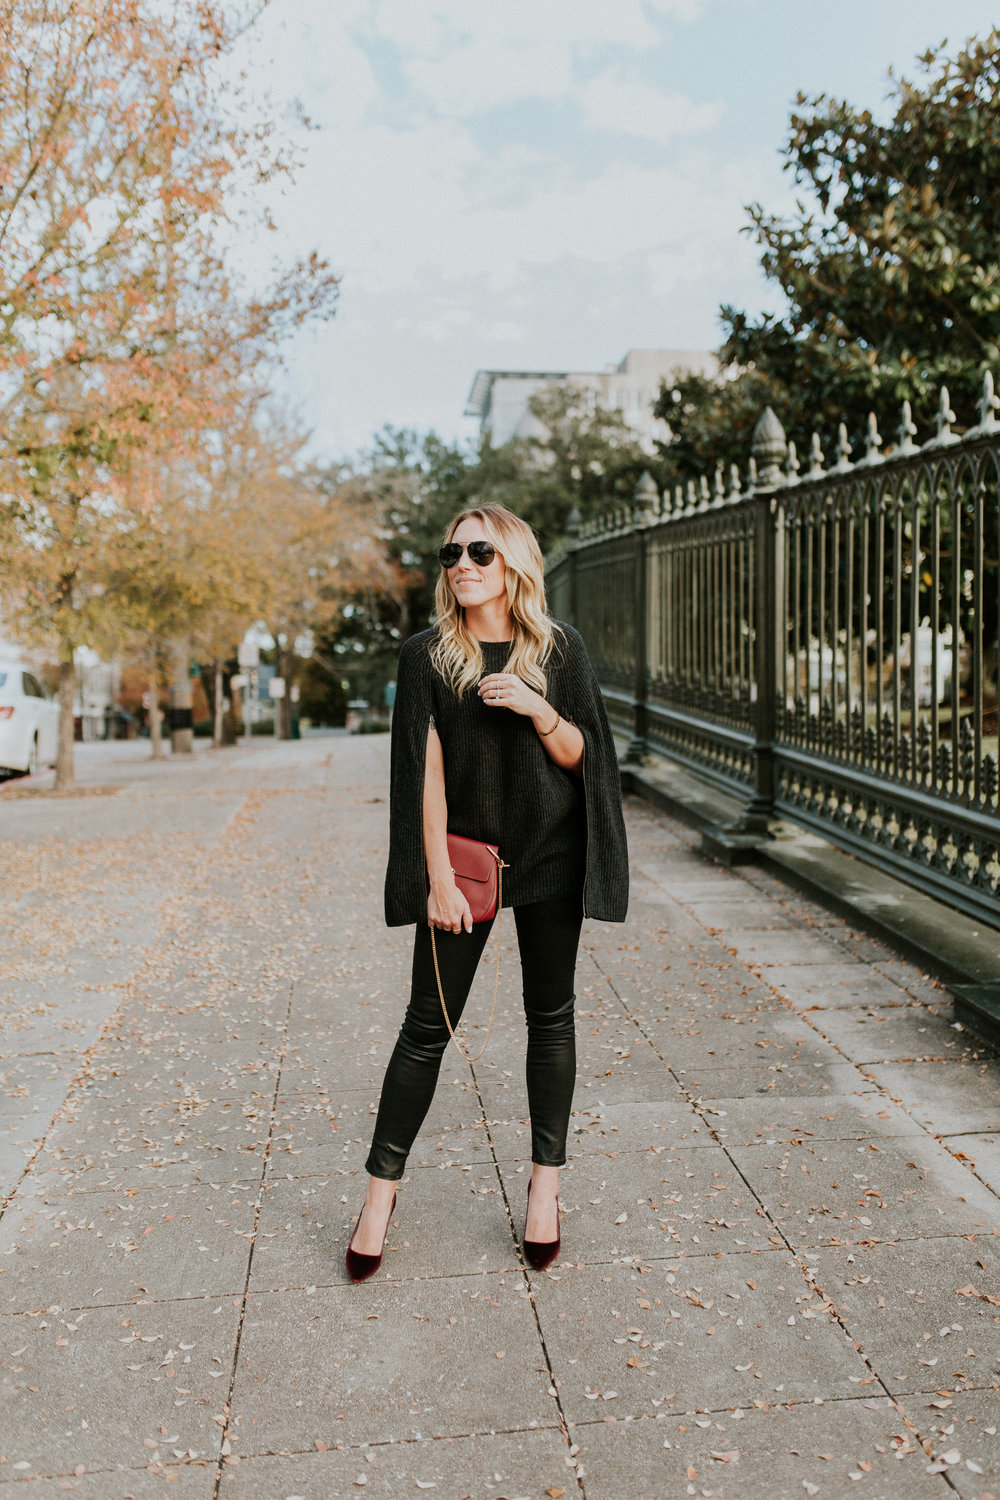 Blogger Gracefully Taylored in Autumn Cashmere Cape and Dee Keller Shoes(9).jpg